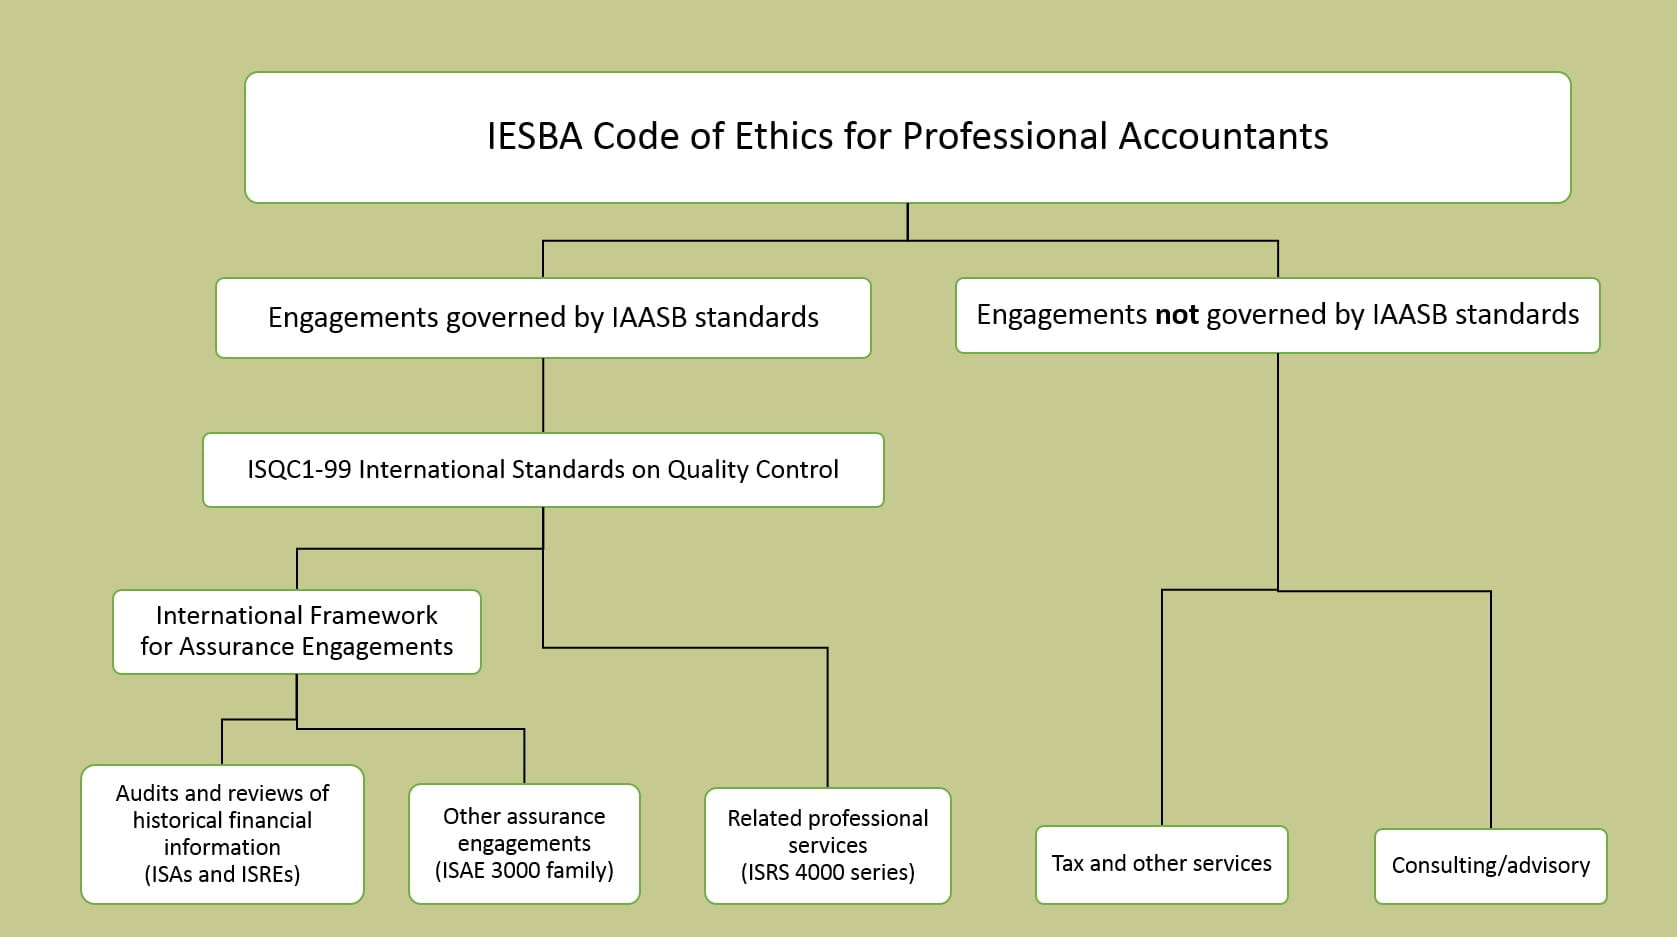 A graphic illustrating where the International Framework for Assurance Engagements sits within the various IAASB and related Codes and Standards.